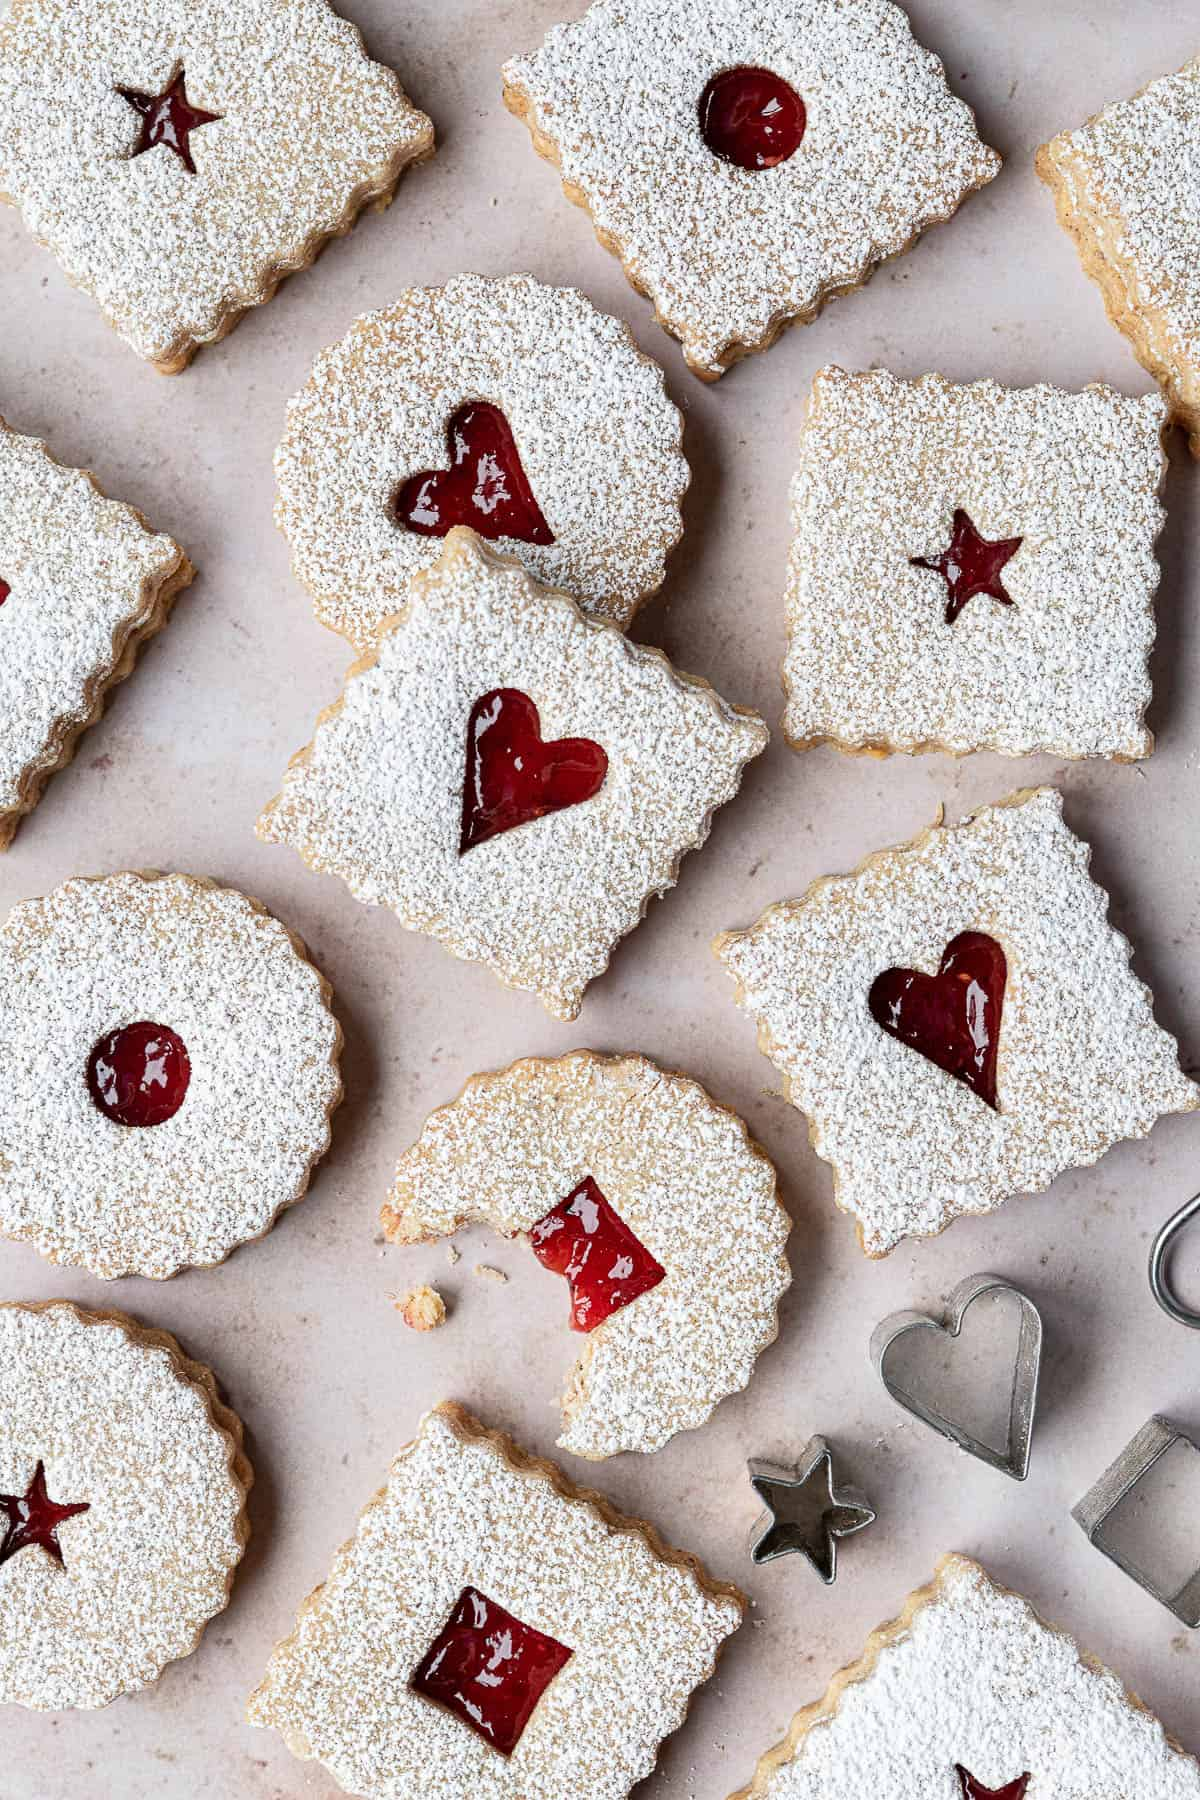 Vegan Linzer cookies on a marble background, one with a bite taken out of it.